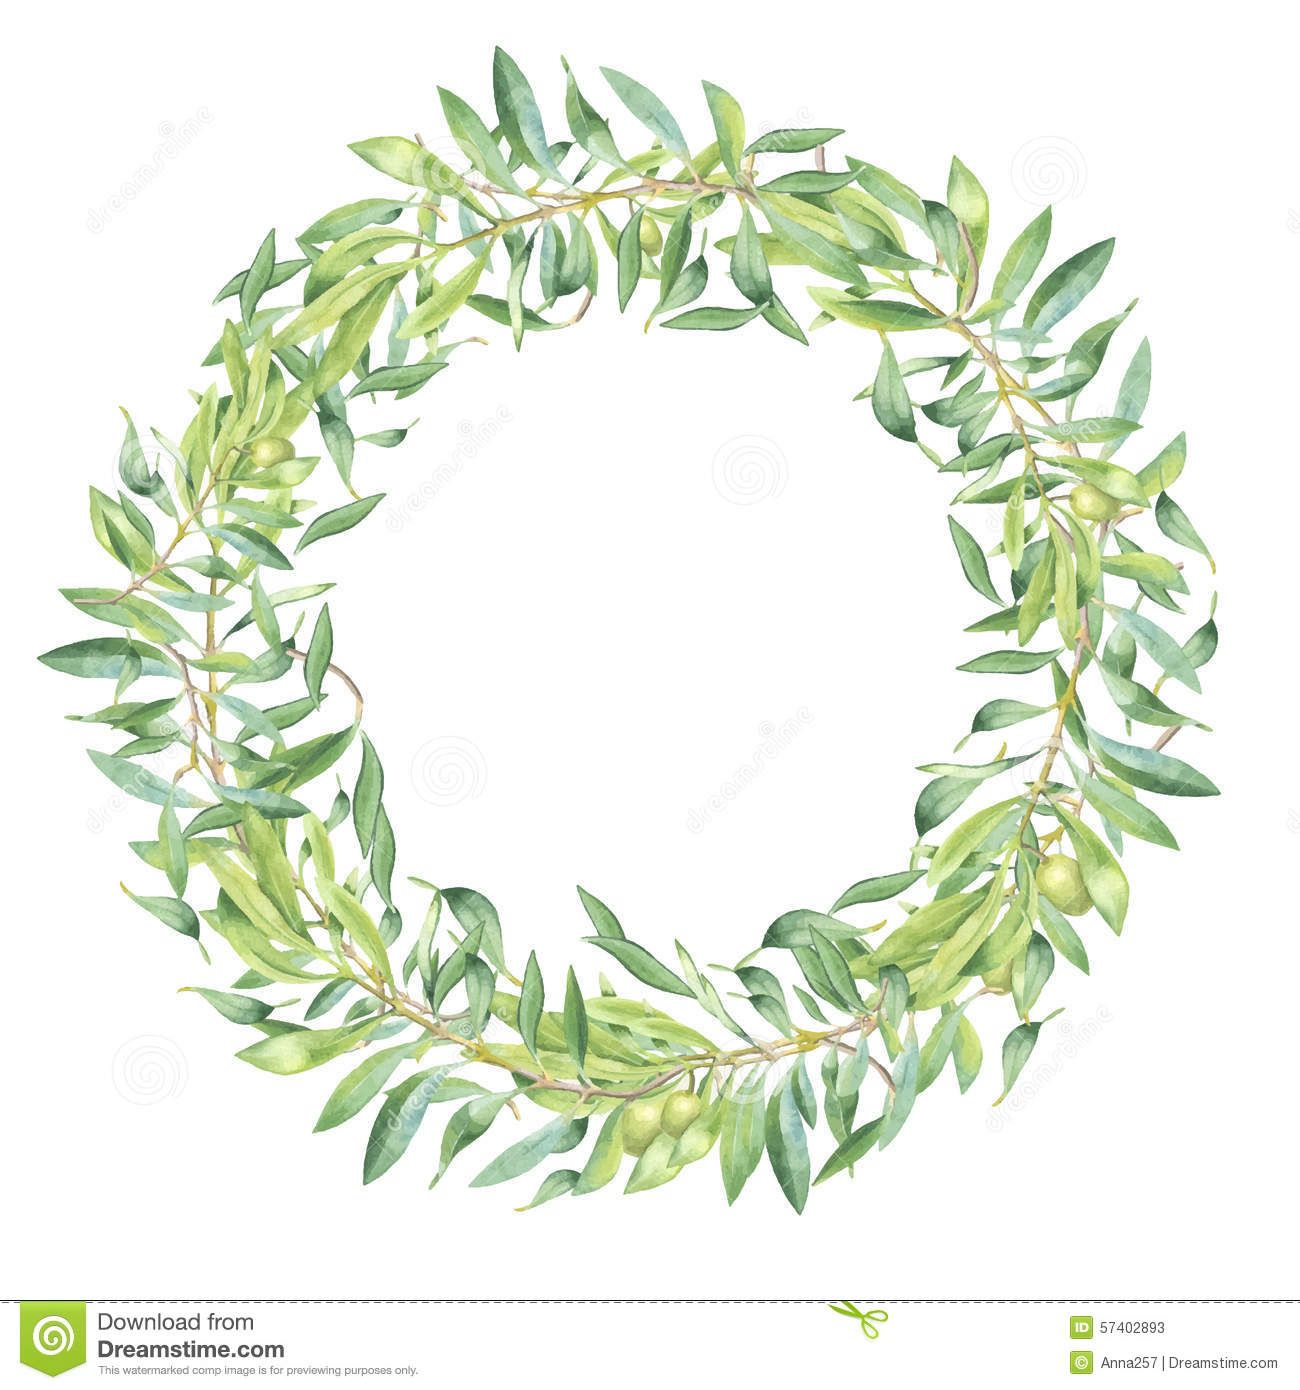 green-watercolor-olive-branch-frame-white-background-57402893.jpg ...